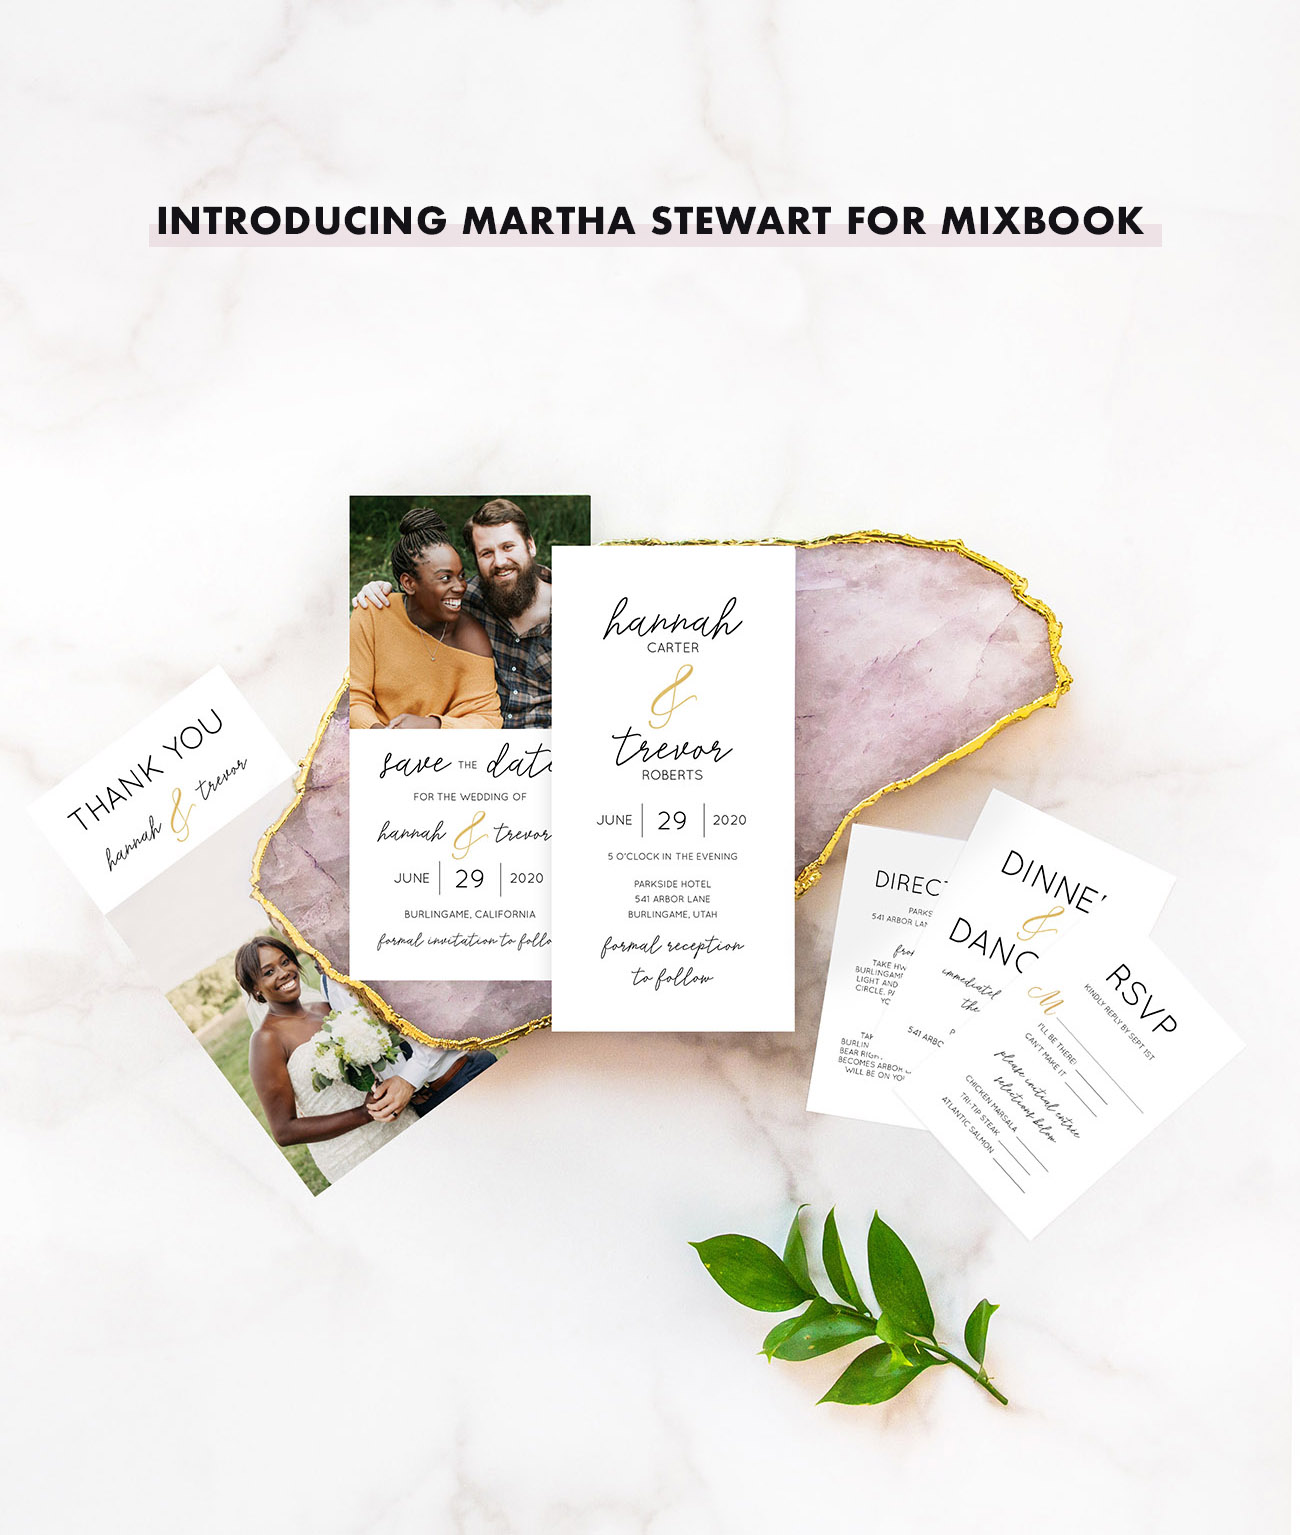 Martha Stewart for Mixbook